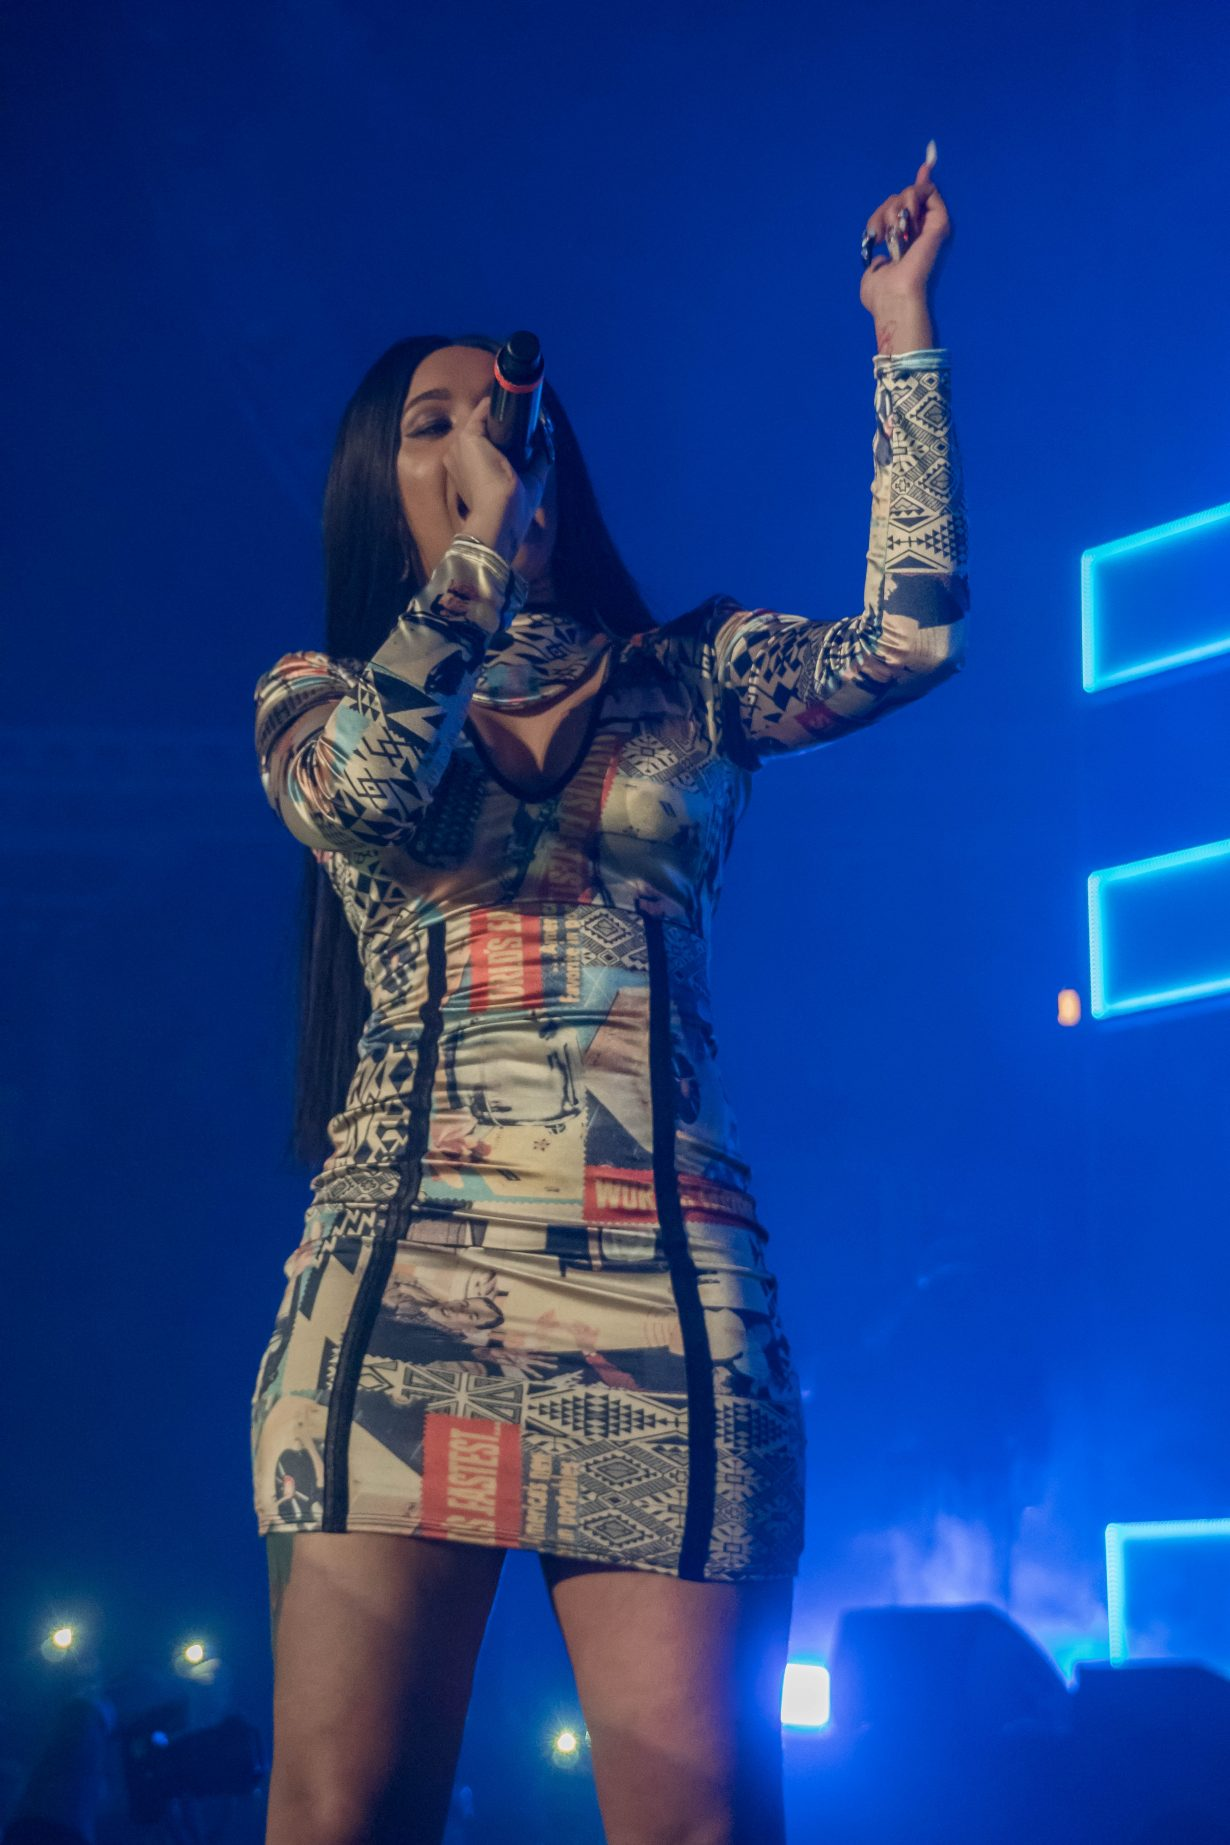 Cardi B. RapCaviar Aragon Ballroom 2017 Chicago Il. Photo by Kevin Baker 8 1230x1845 RapCaviar Sets Chicago On Fire with Lil Uzi Vert, Playboi Carti, Cardi B, DJ Drama and More